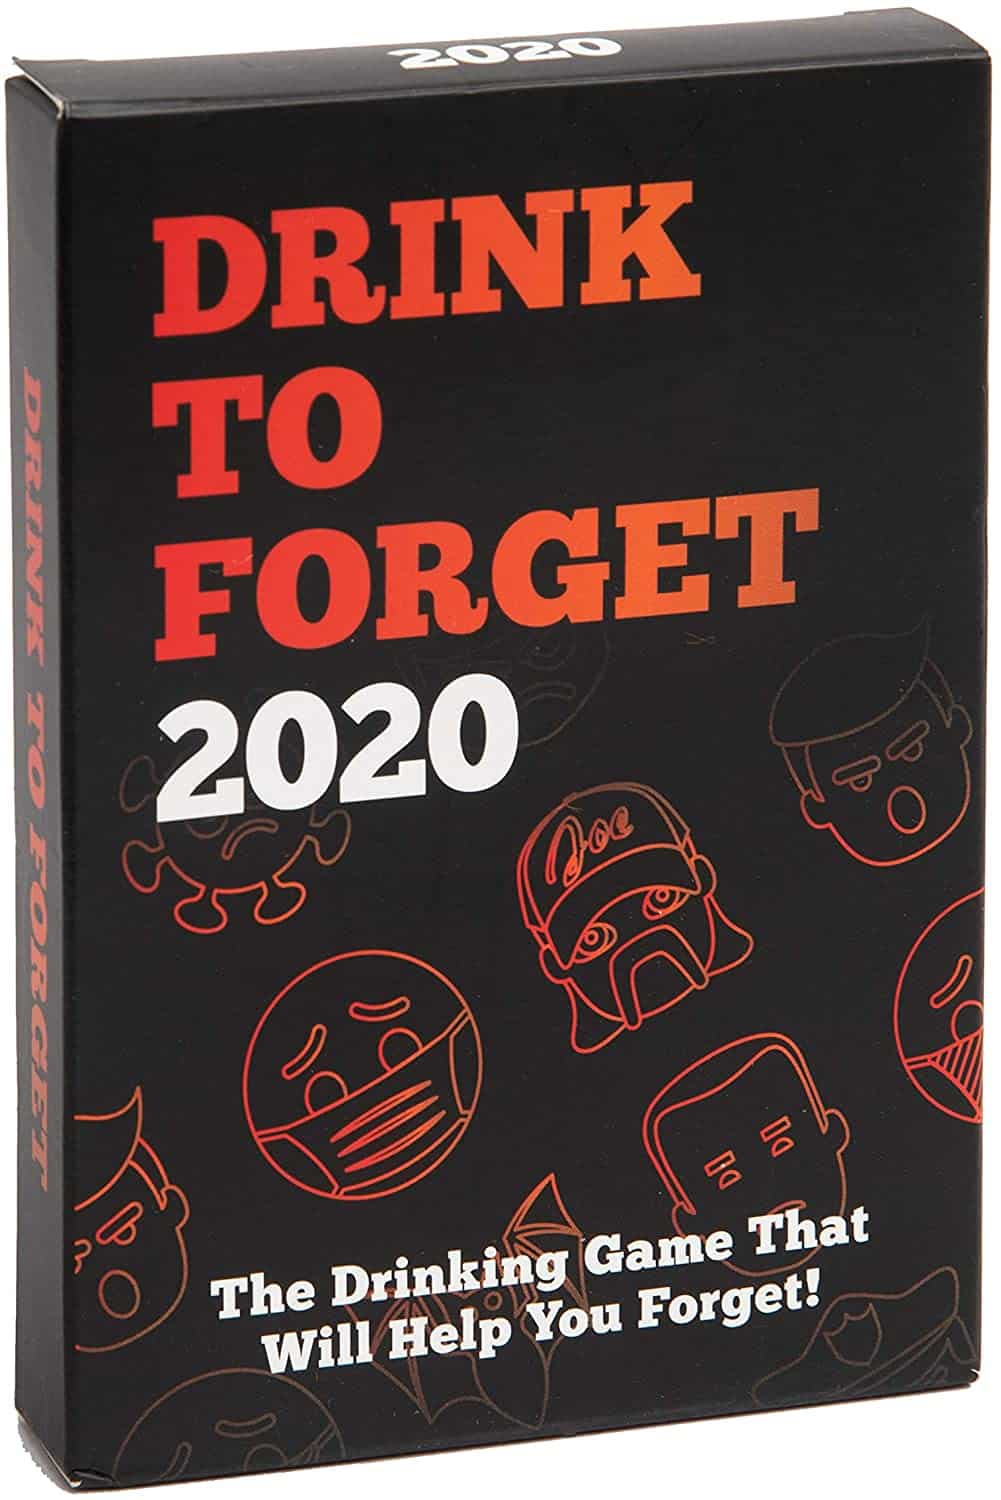 Drink To Forget 2020 - Card Game